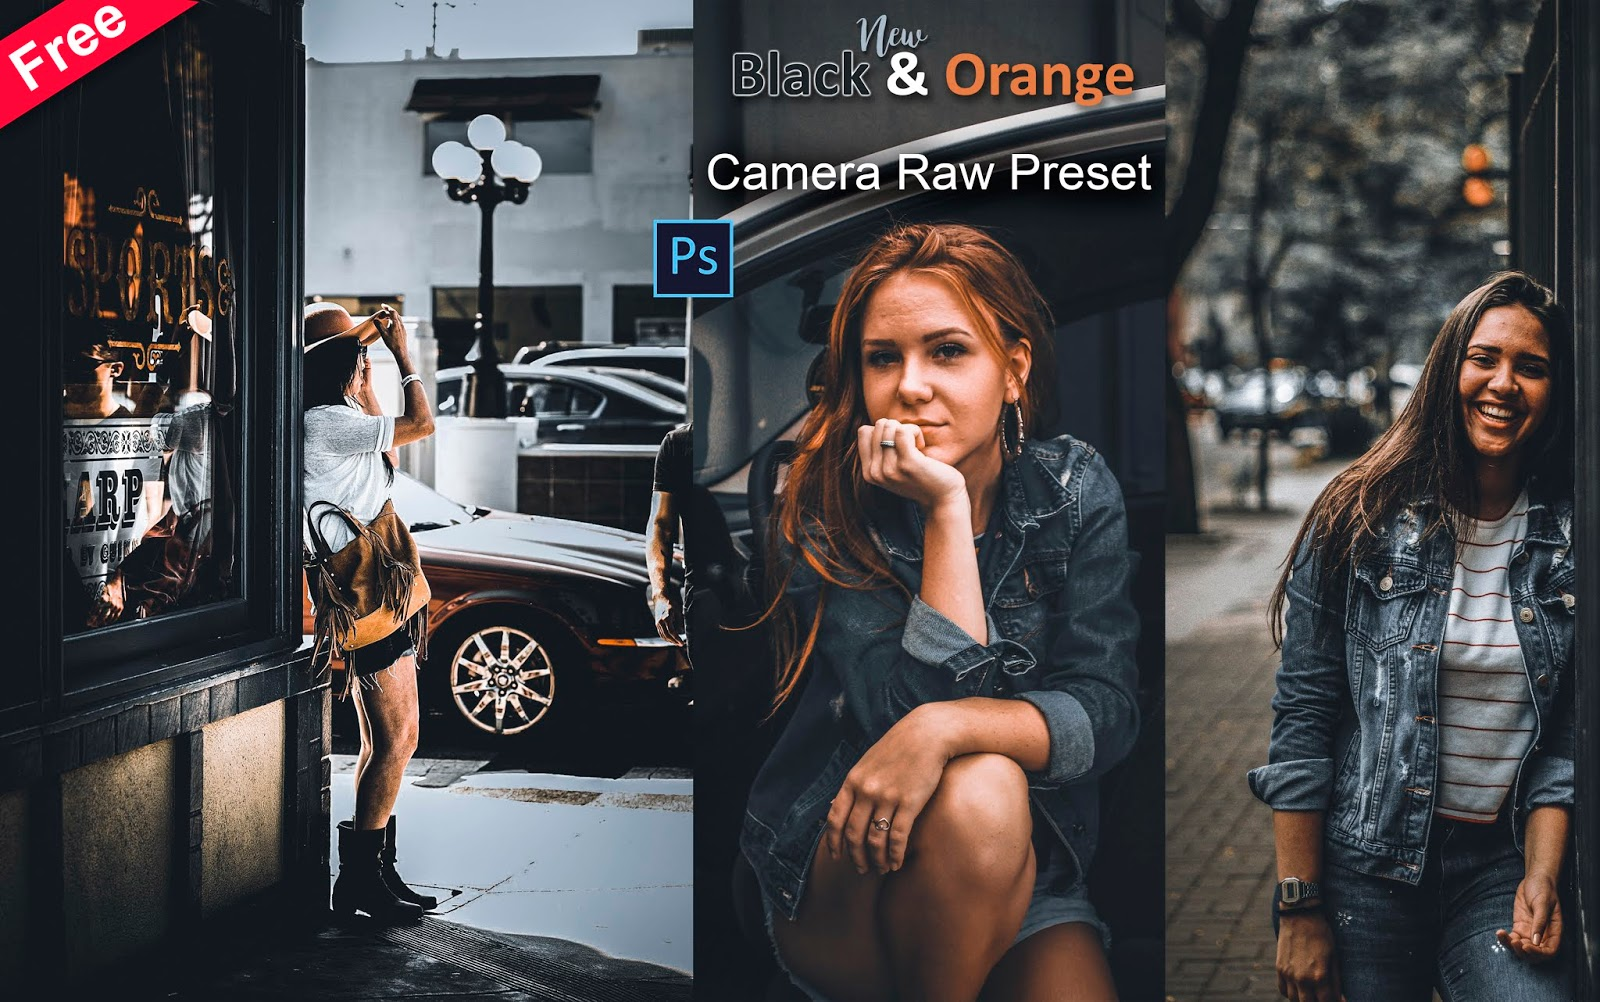 New Black & Orange Camera Raw Preset for Free | How to Edit Your Photos with Black & Orange Effect in Photoshop